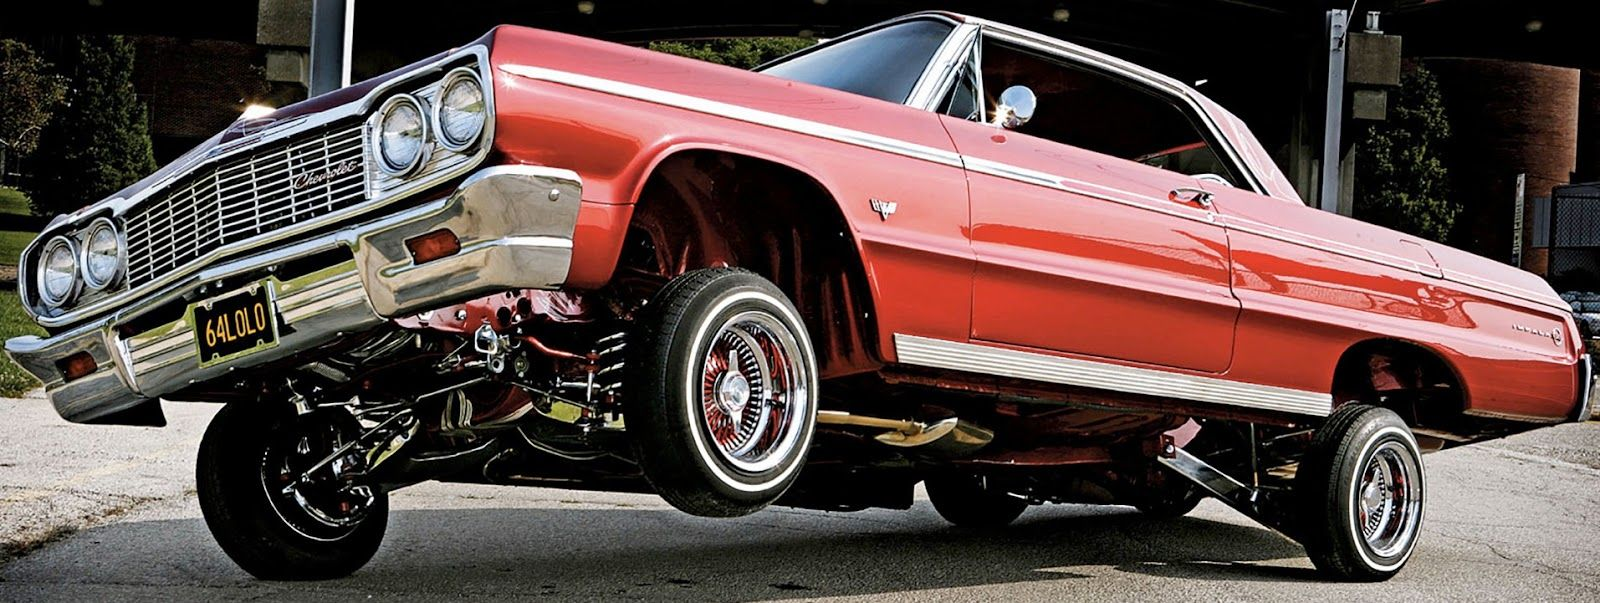 Lowrider Wallpapers Group 1920×1200 Lowrider Wallpapers